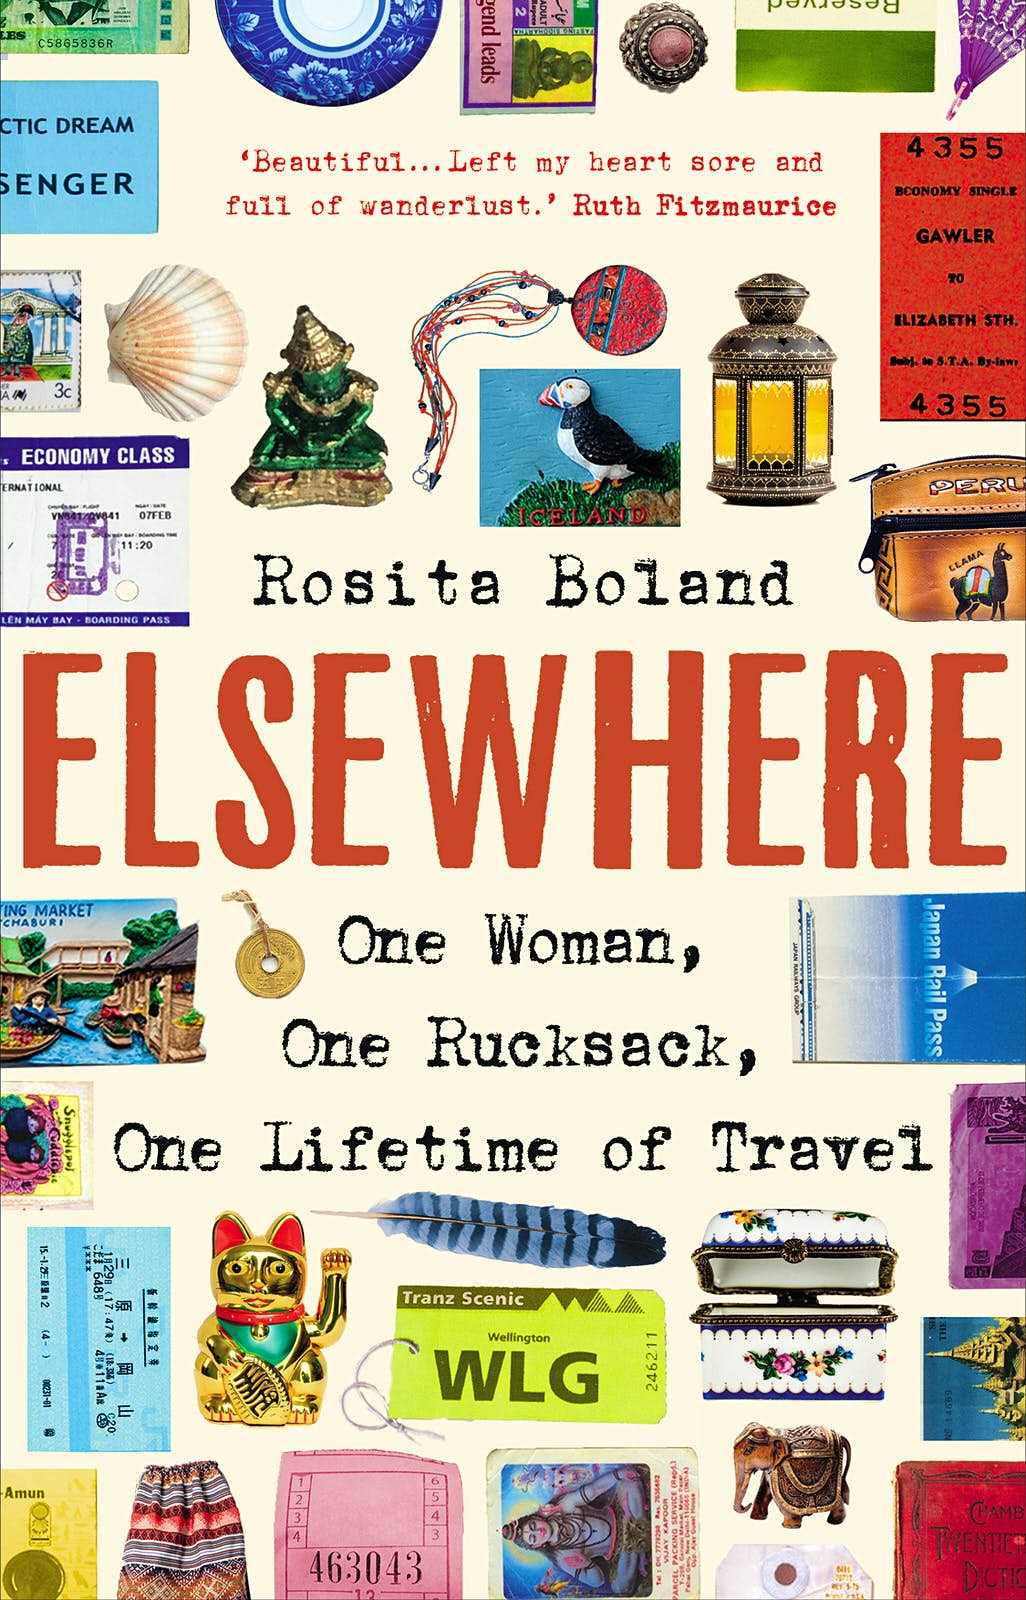 The jacket cover for Elsewhere by Rosita Boland.